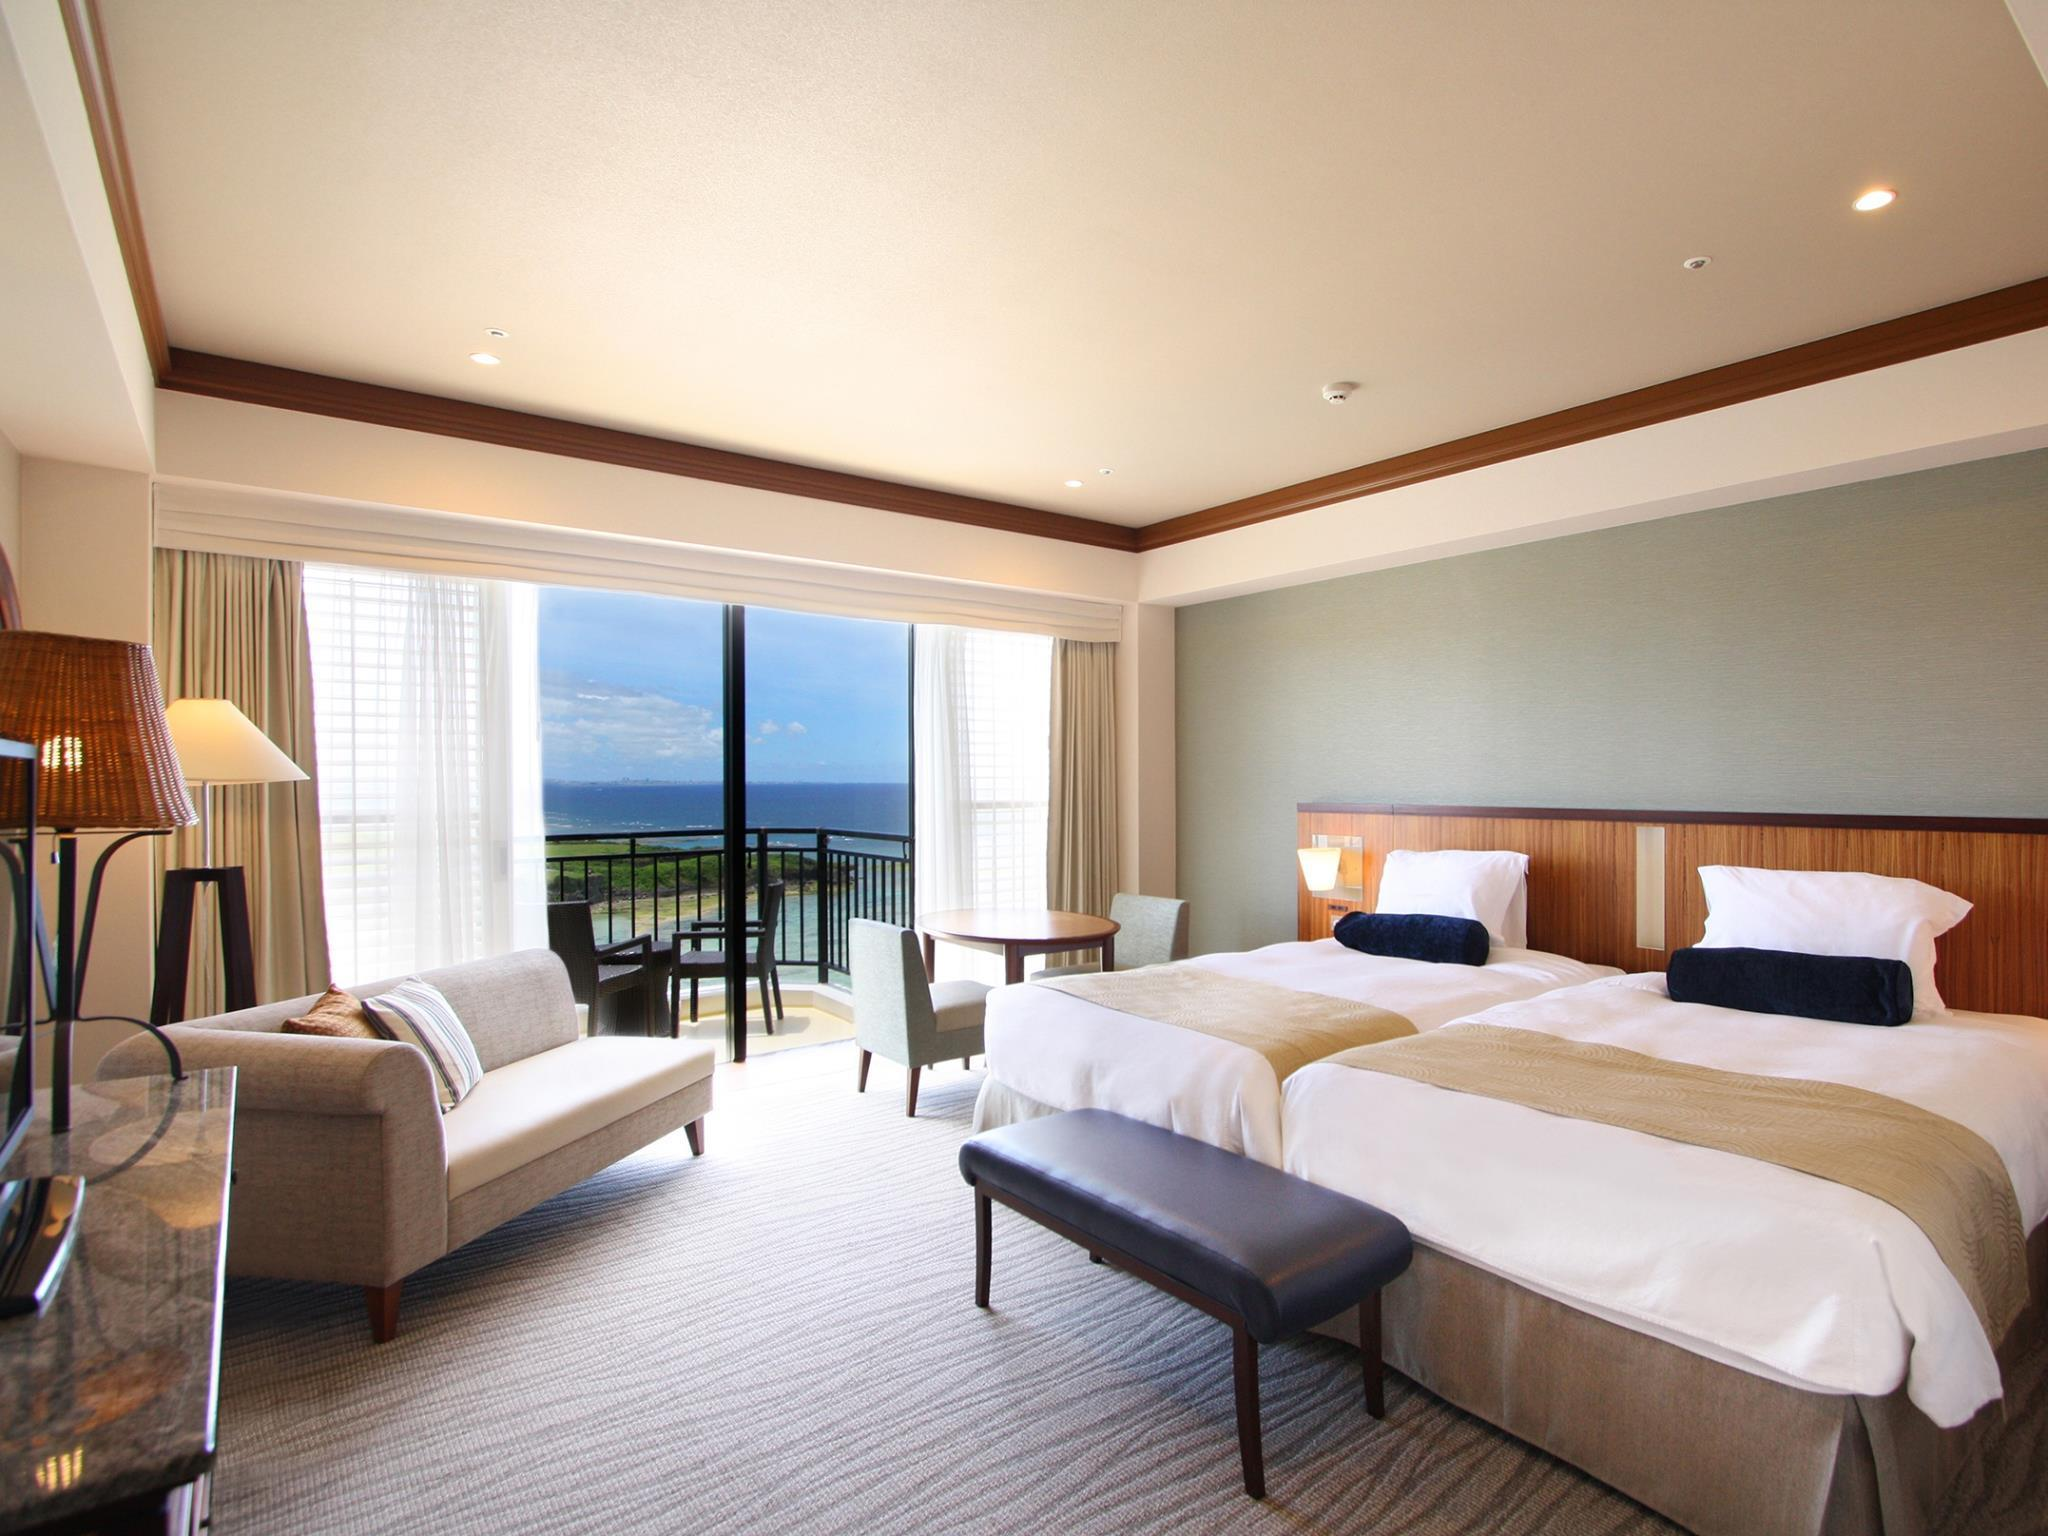 Top Deluxe dengan Pemandangan Laut (Top Deluxe Sea View)